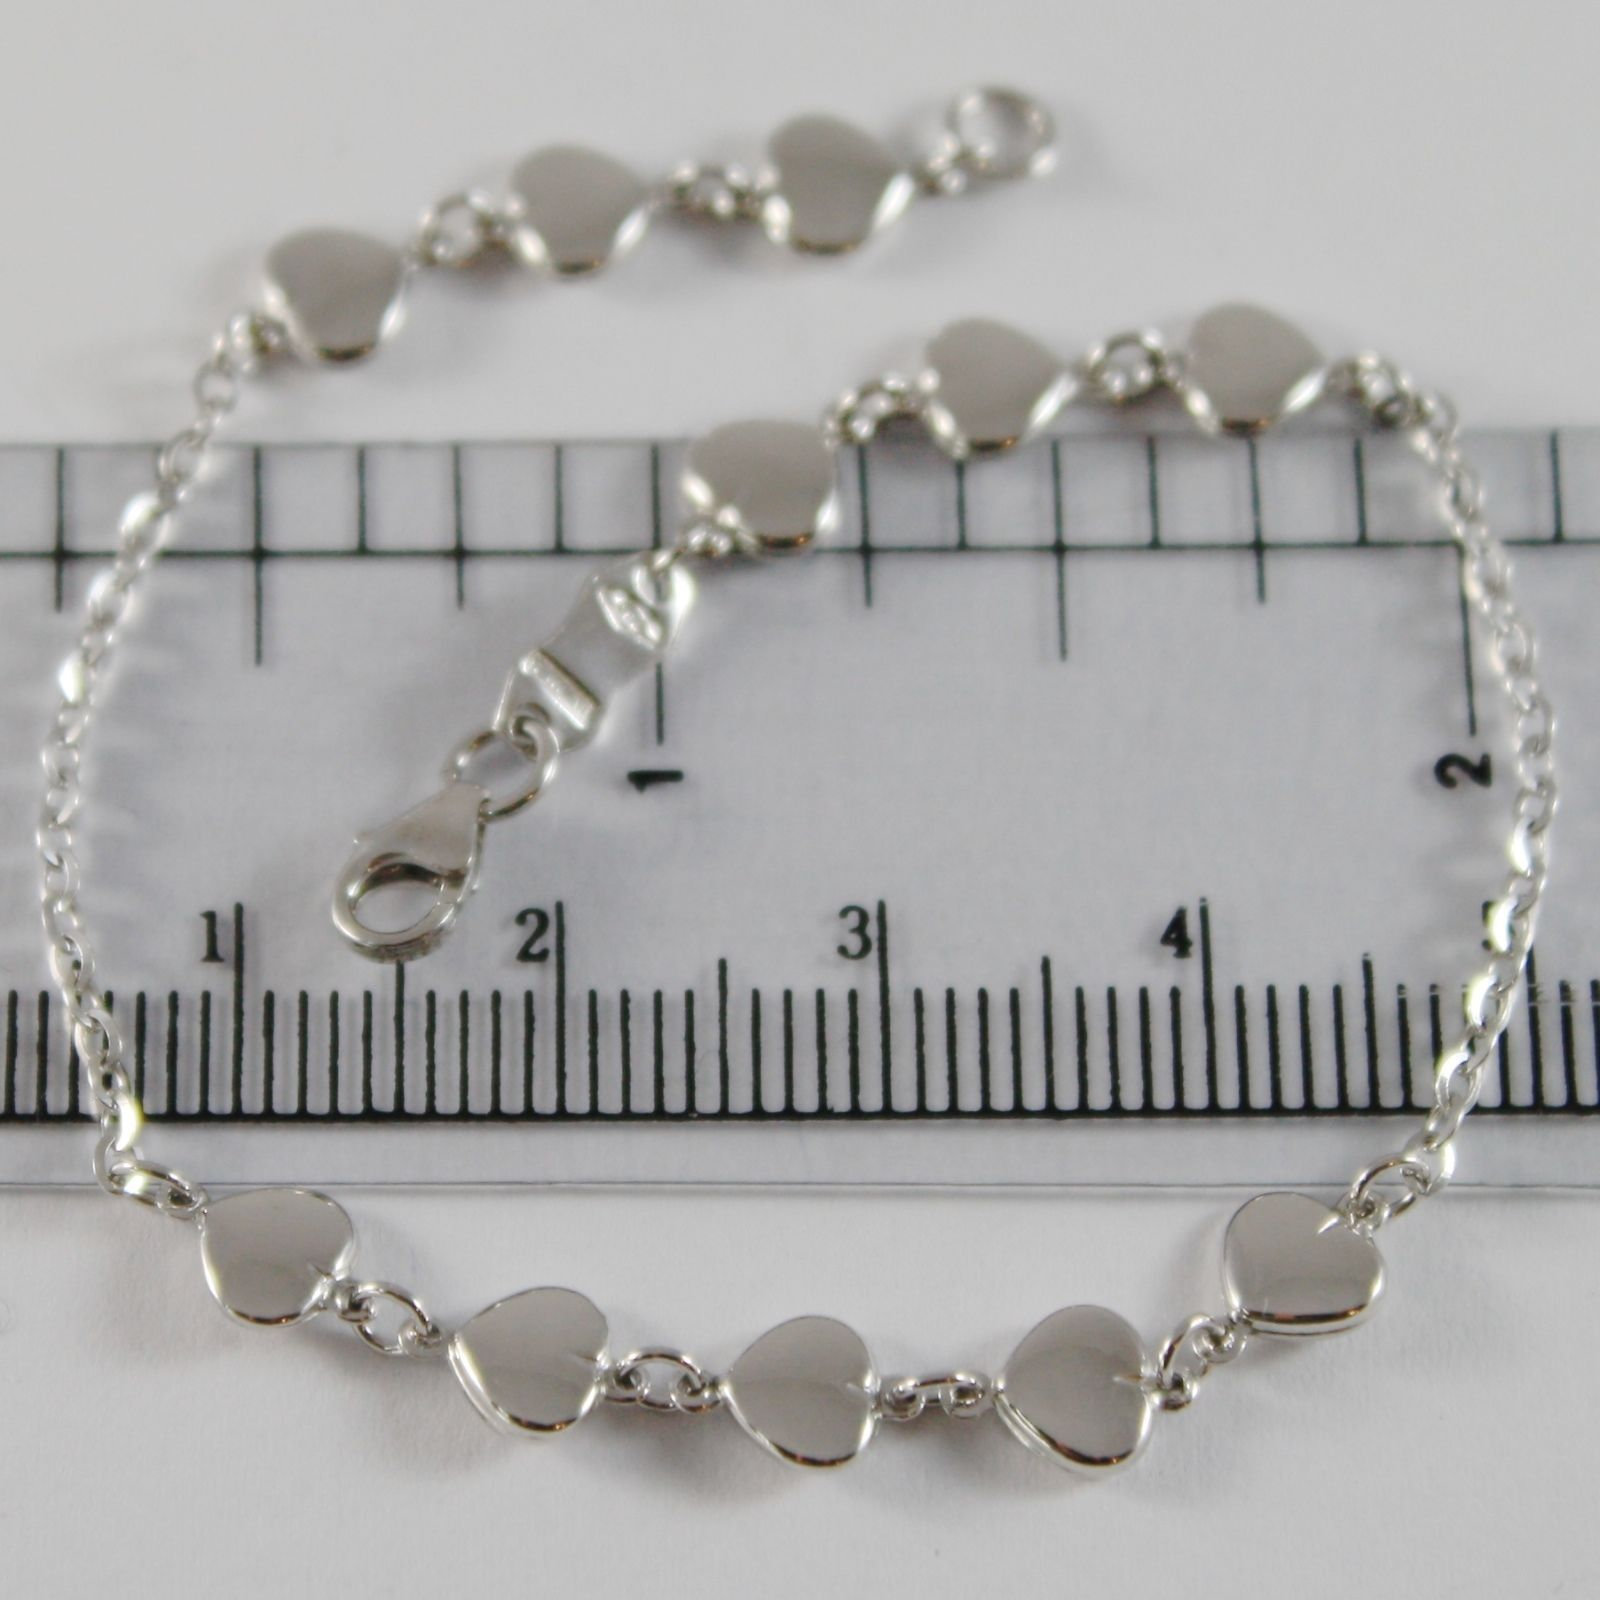 18K WHITE GOLD BRACELET 7.10 INCHES WITH FLAT HEARTS HEART, MADE IN ITALY